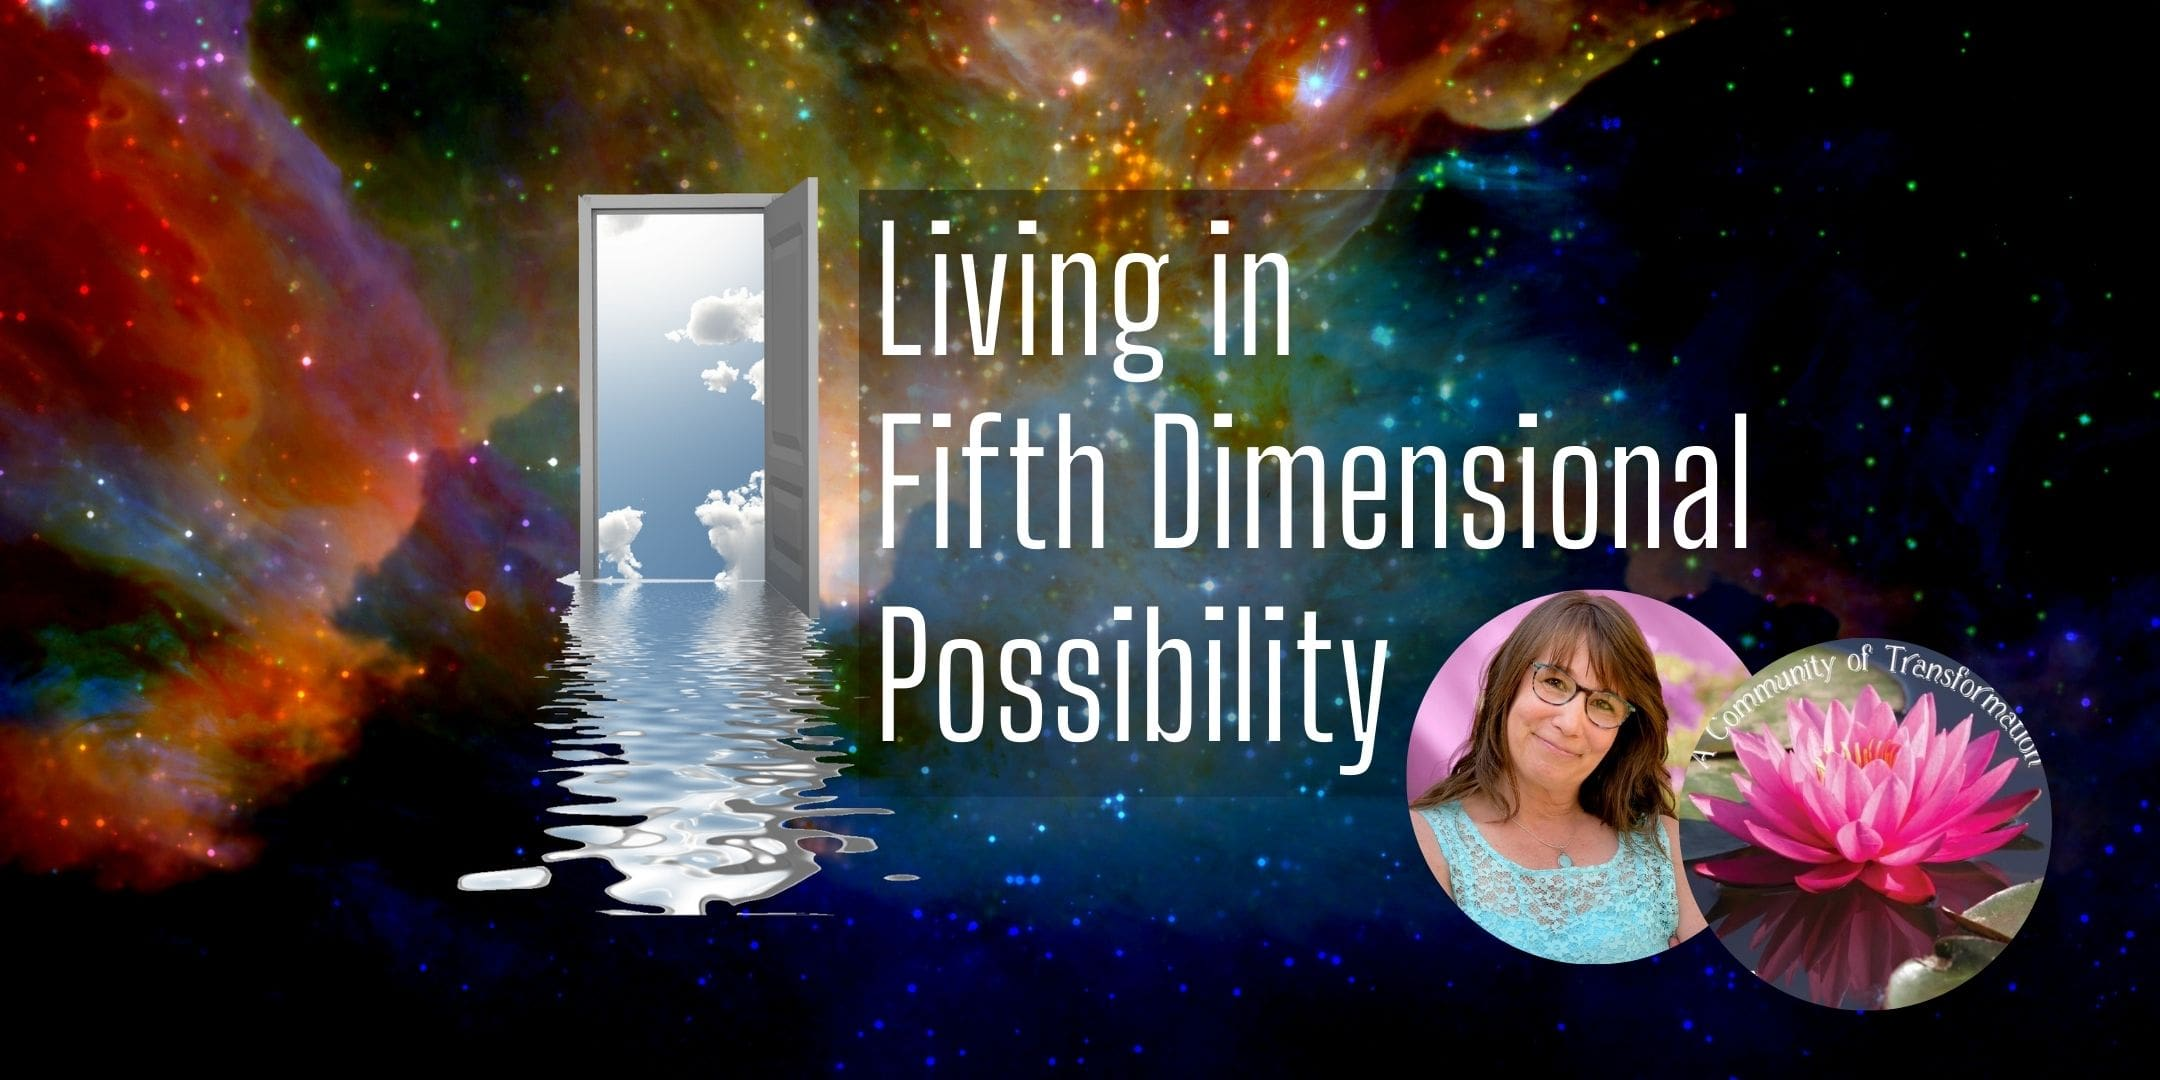 Event Image: Galaxy with words Living in Fifth Dimensional Possibility